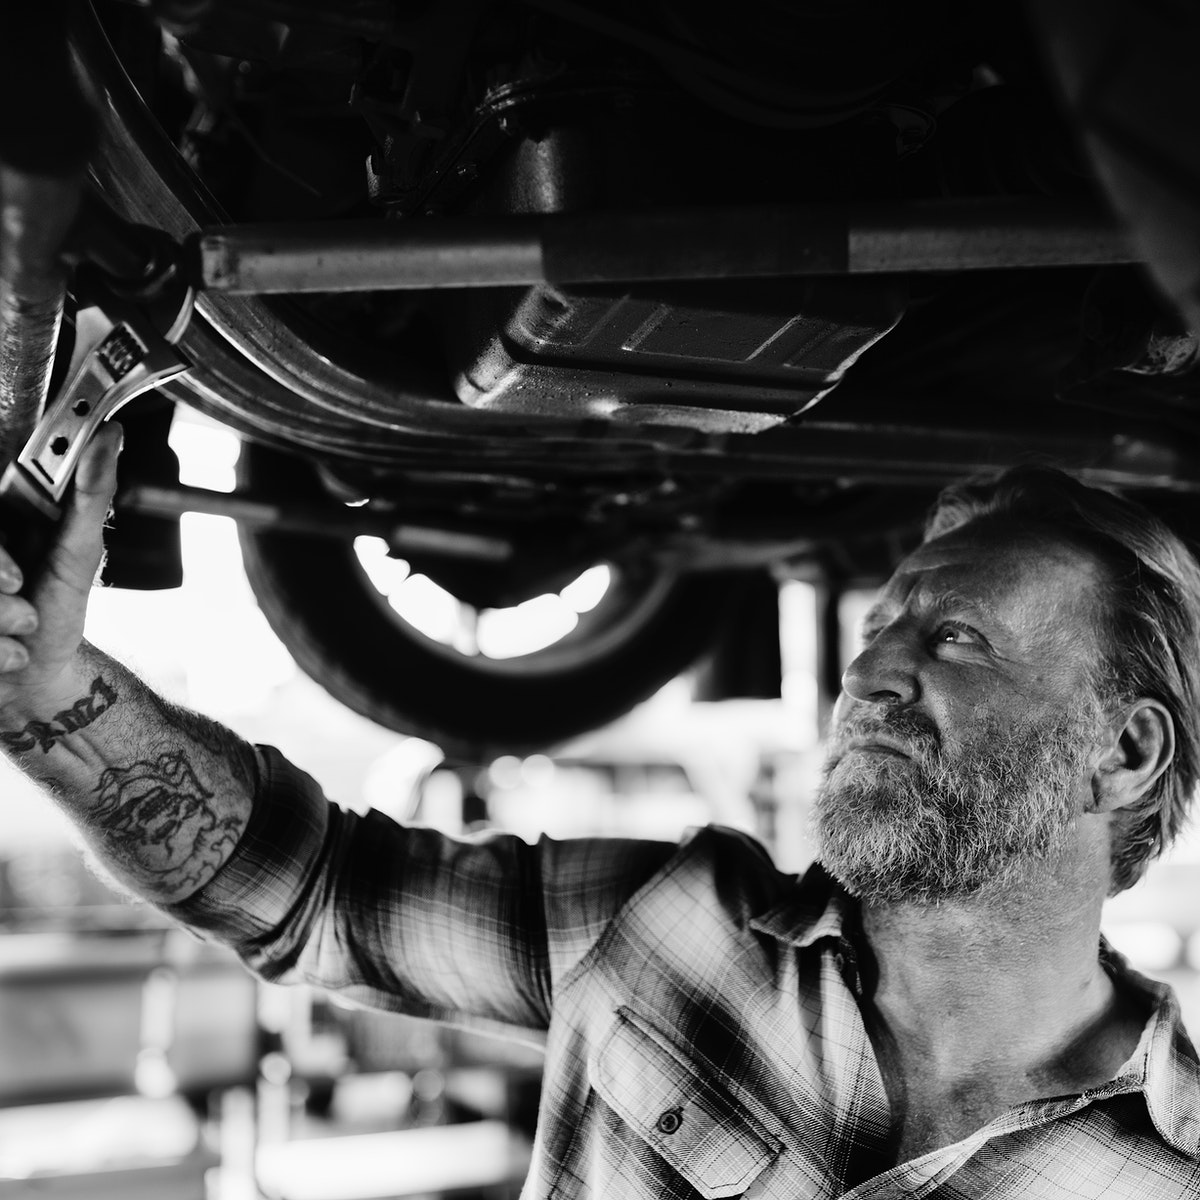 A mechanic holding a wrench